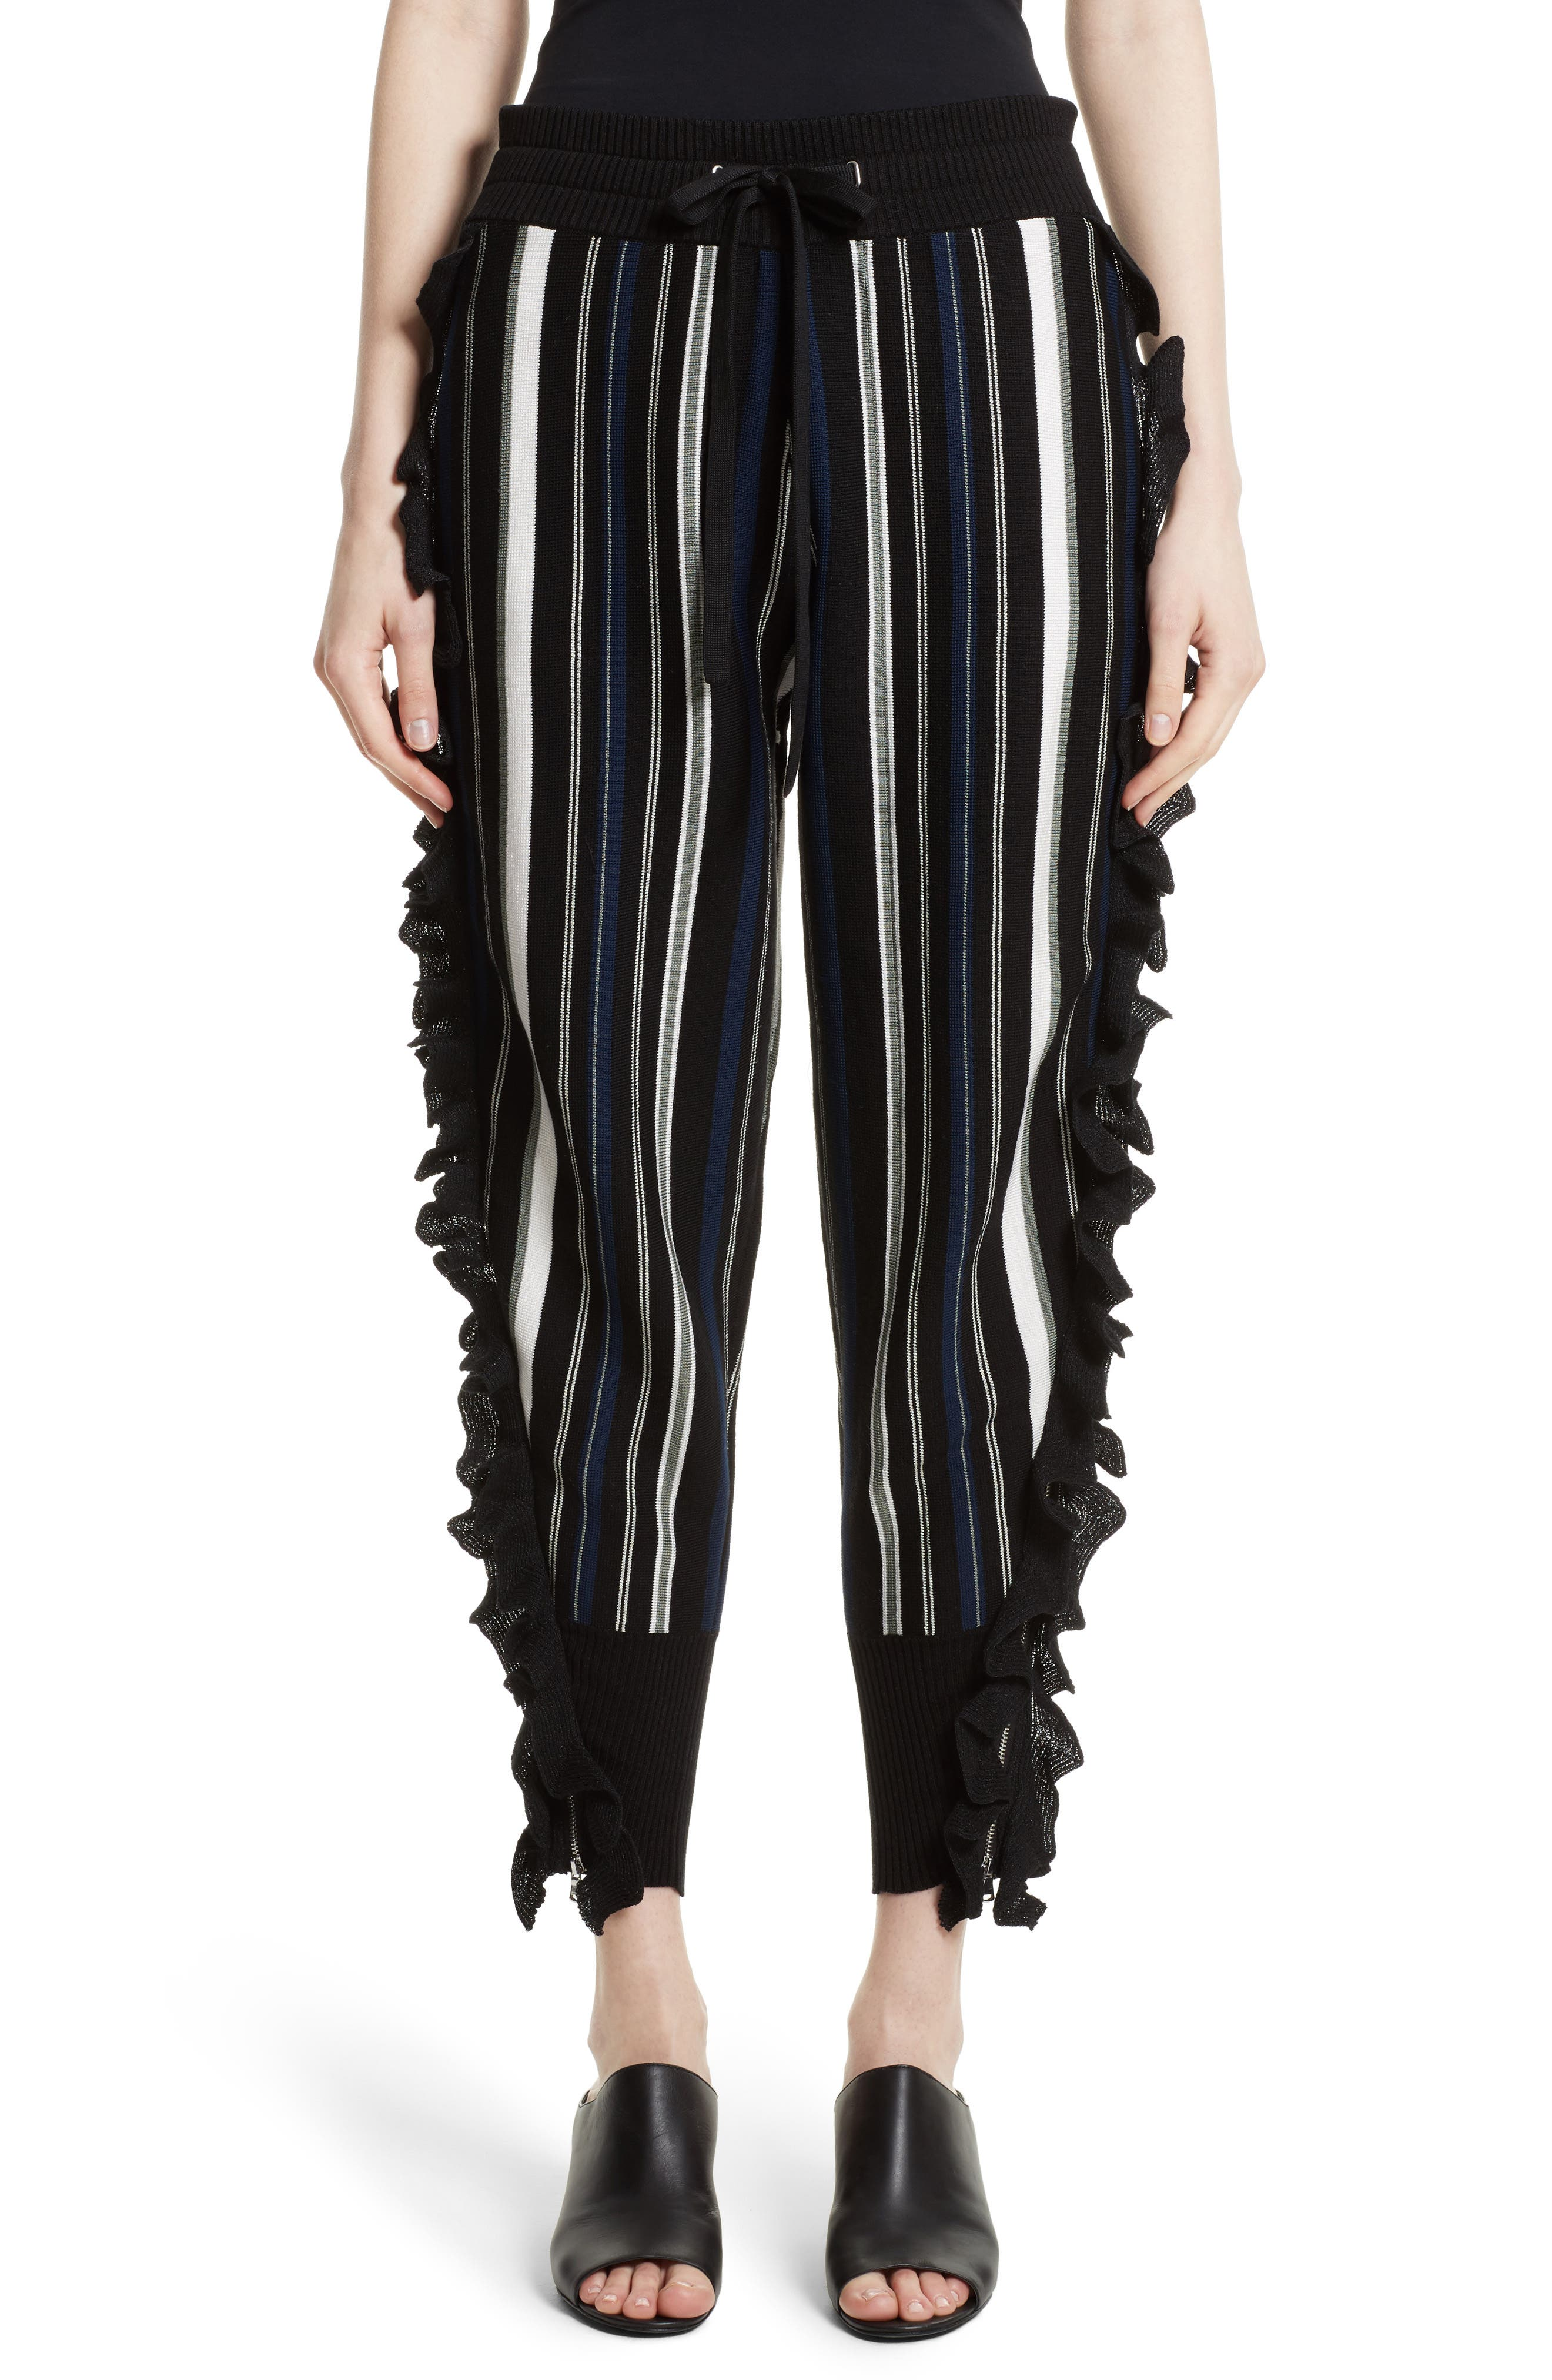 Alternate Image 1 Selected - 3.1 Phillip Lim Ruffle Stripe Knit Pants